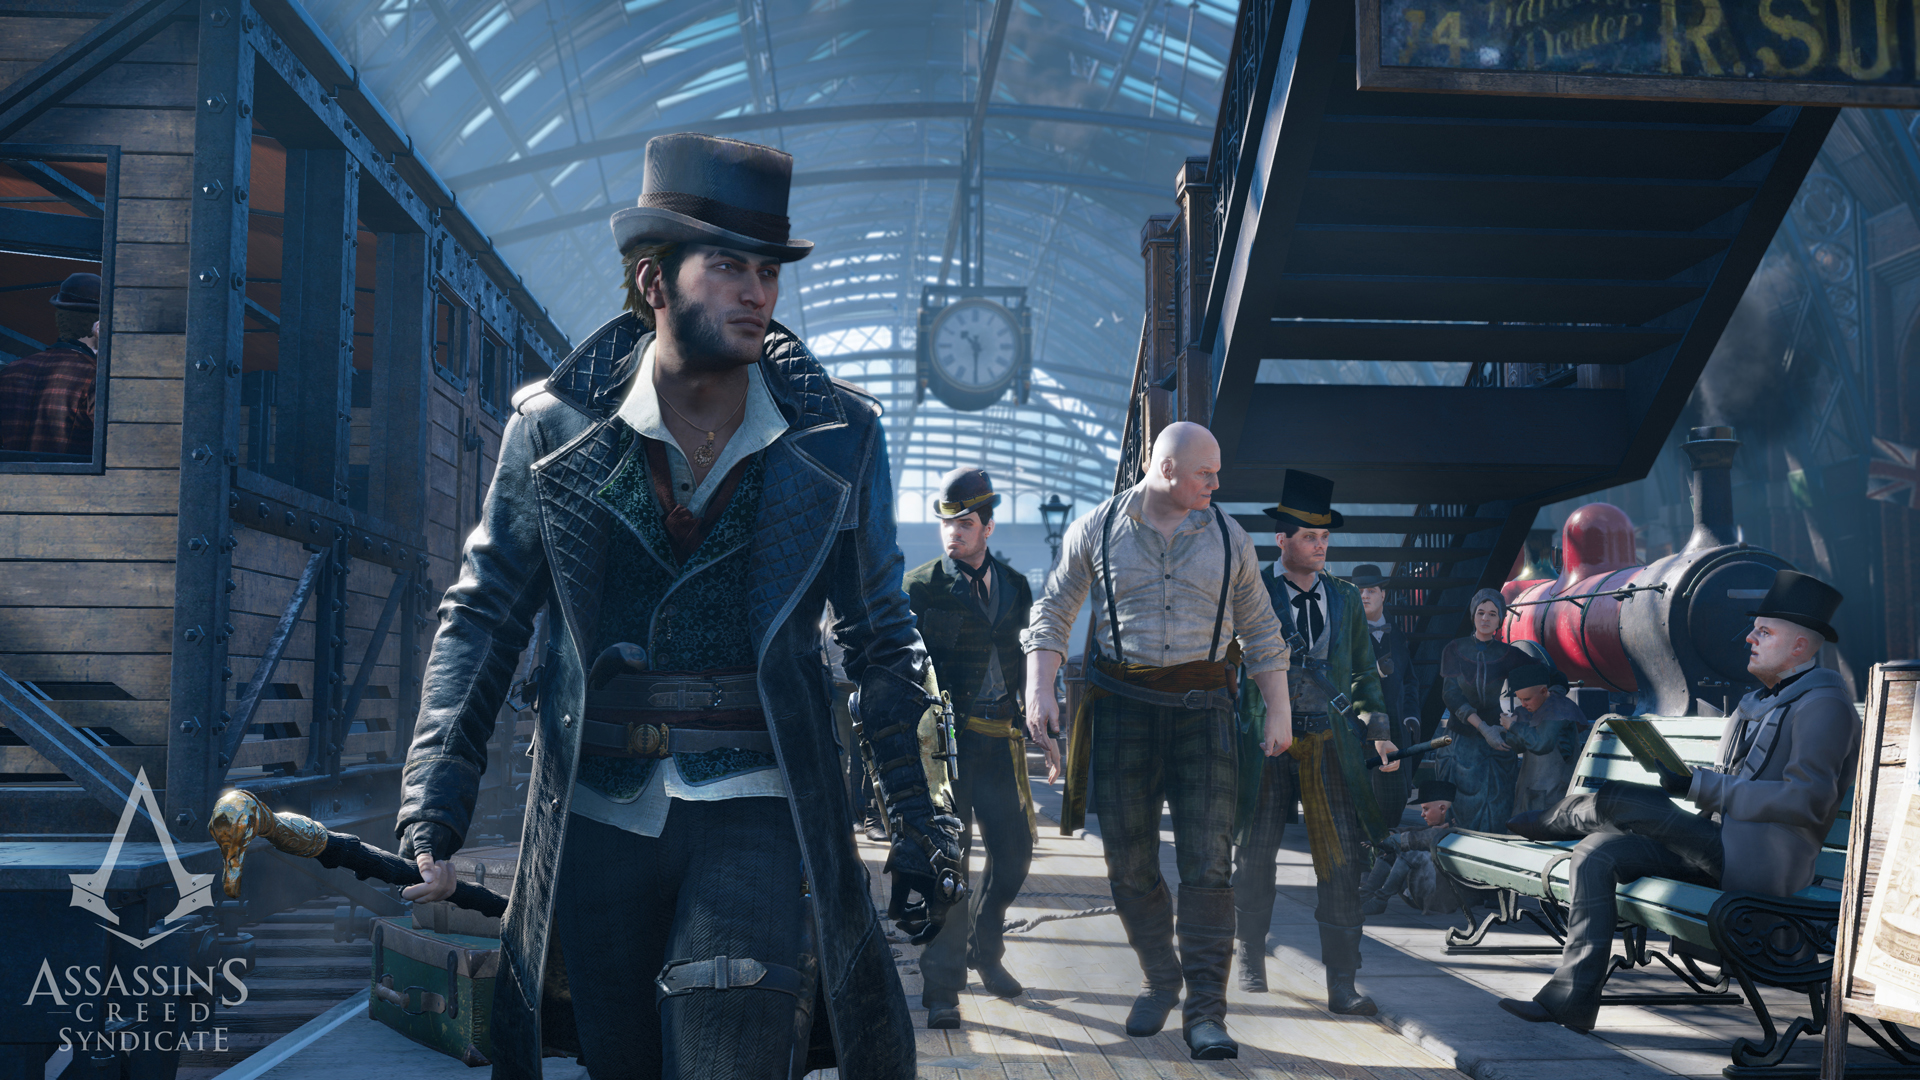 download assassin's creed syndicate gold edition v1.5 singlelink iso codex cpy gog reloaded hi2u prophet release games for pc multi language free 2017 gratis multi15